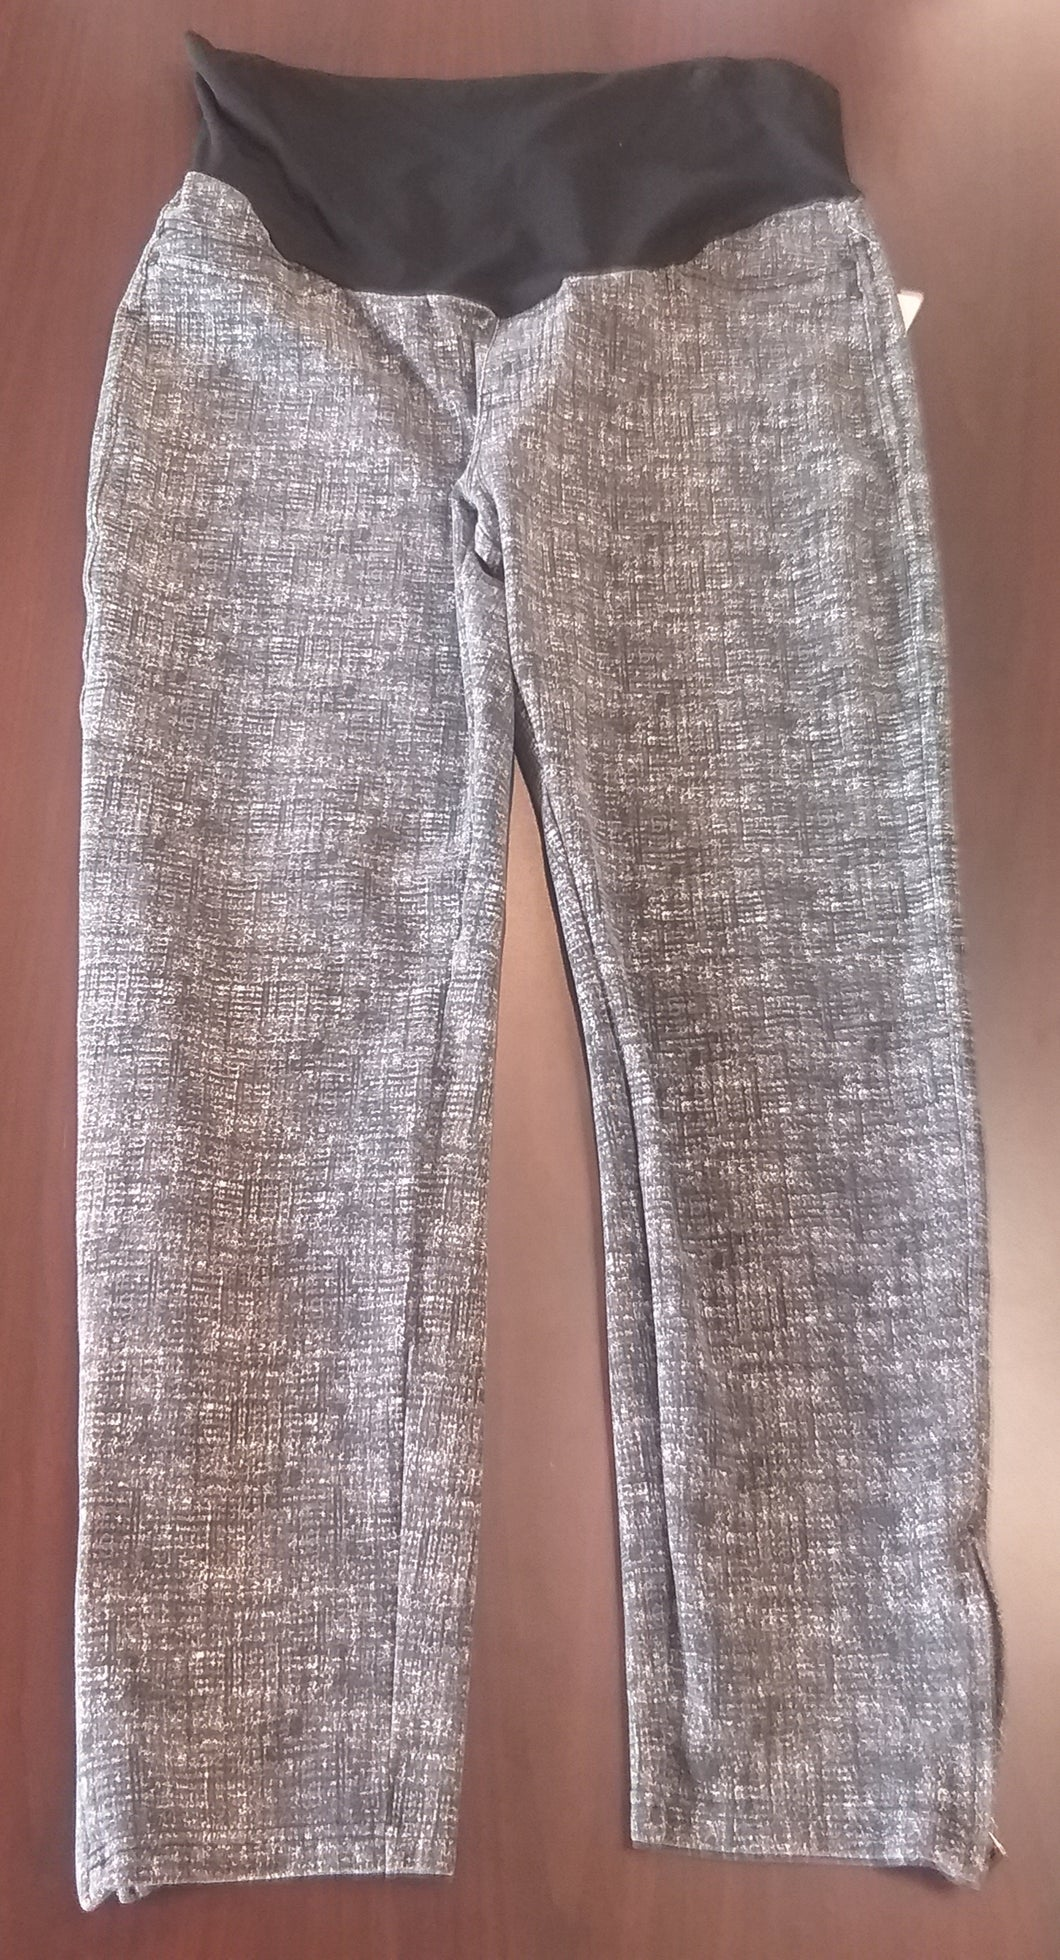 Large Full Panel Gray/Black Maternity Leggings